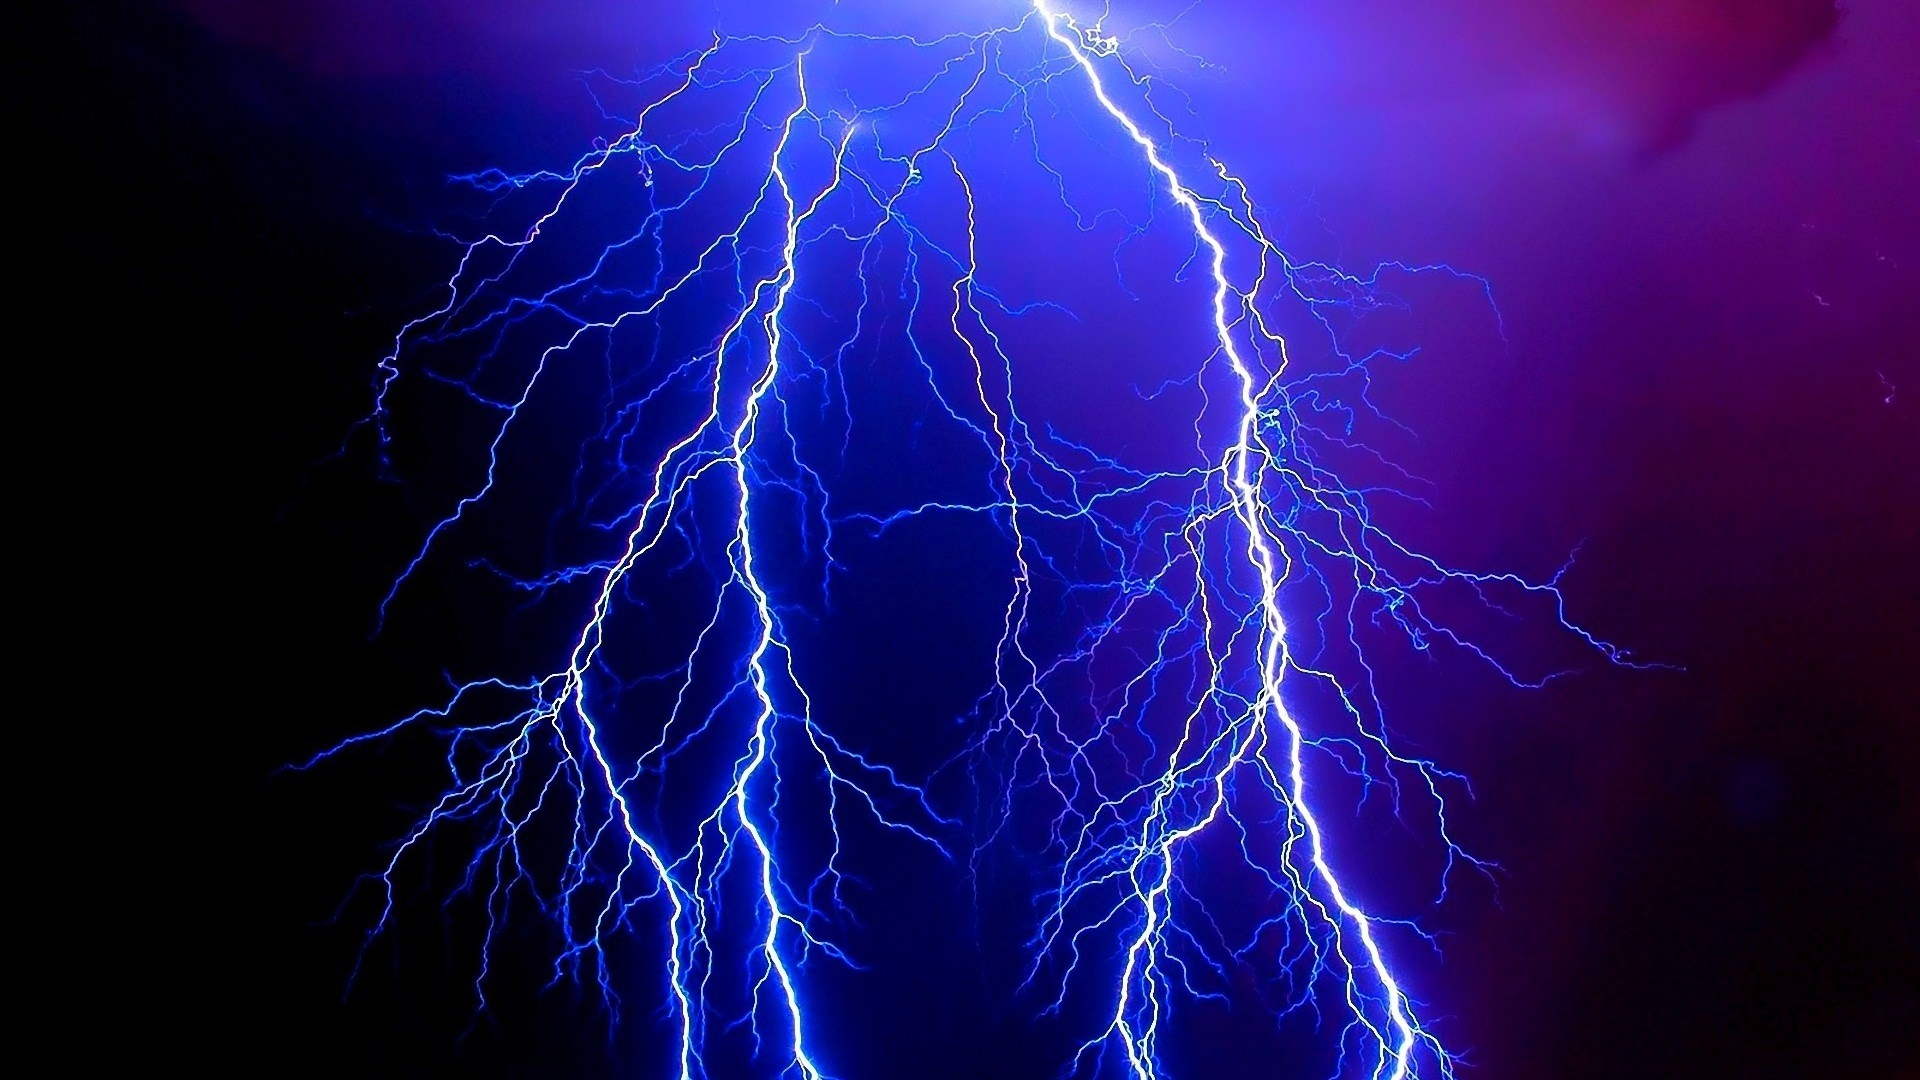 Dangerous Lightning Wallpaper